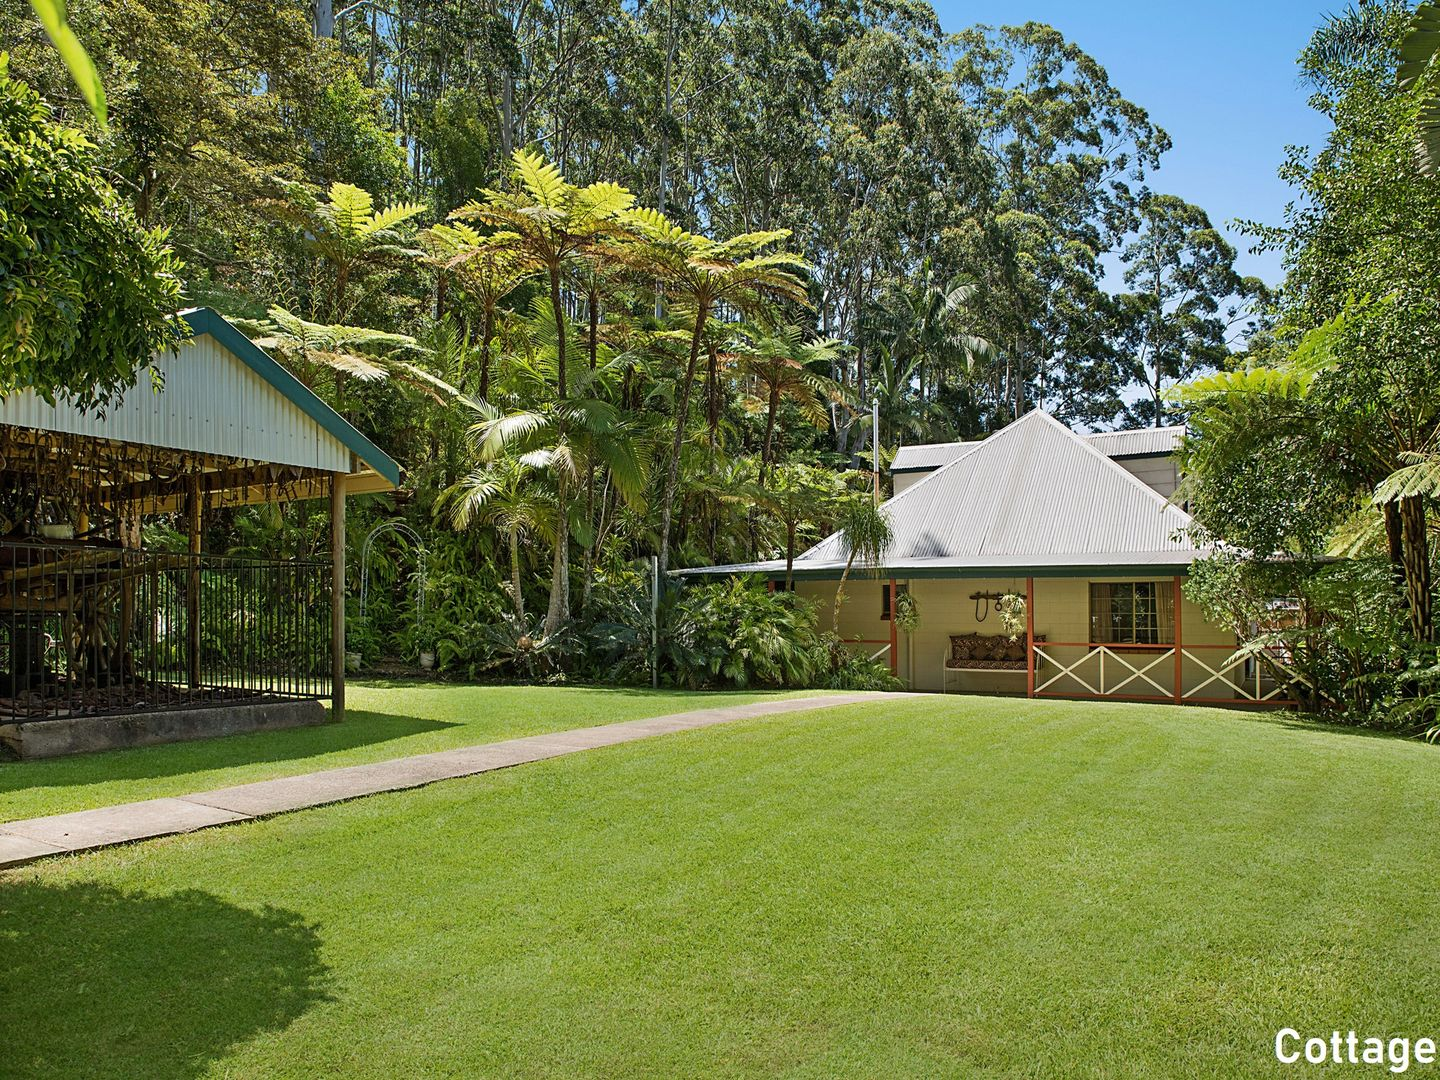 1620 Maleny Stanley River Rd, Booroobin QLD 4552, Image 0